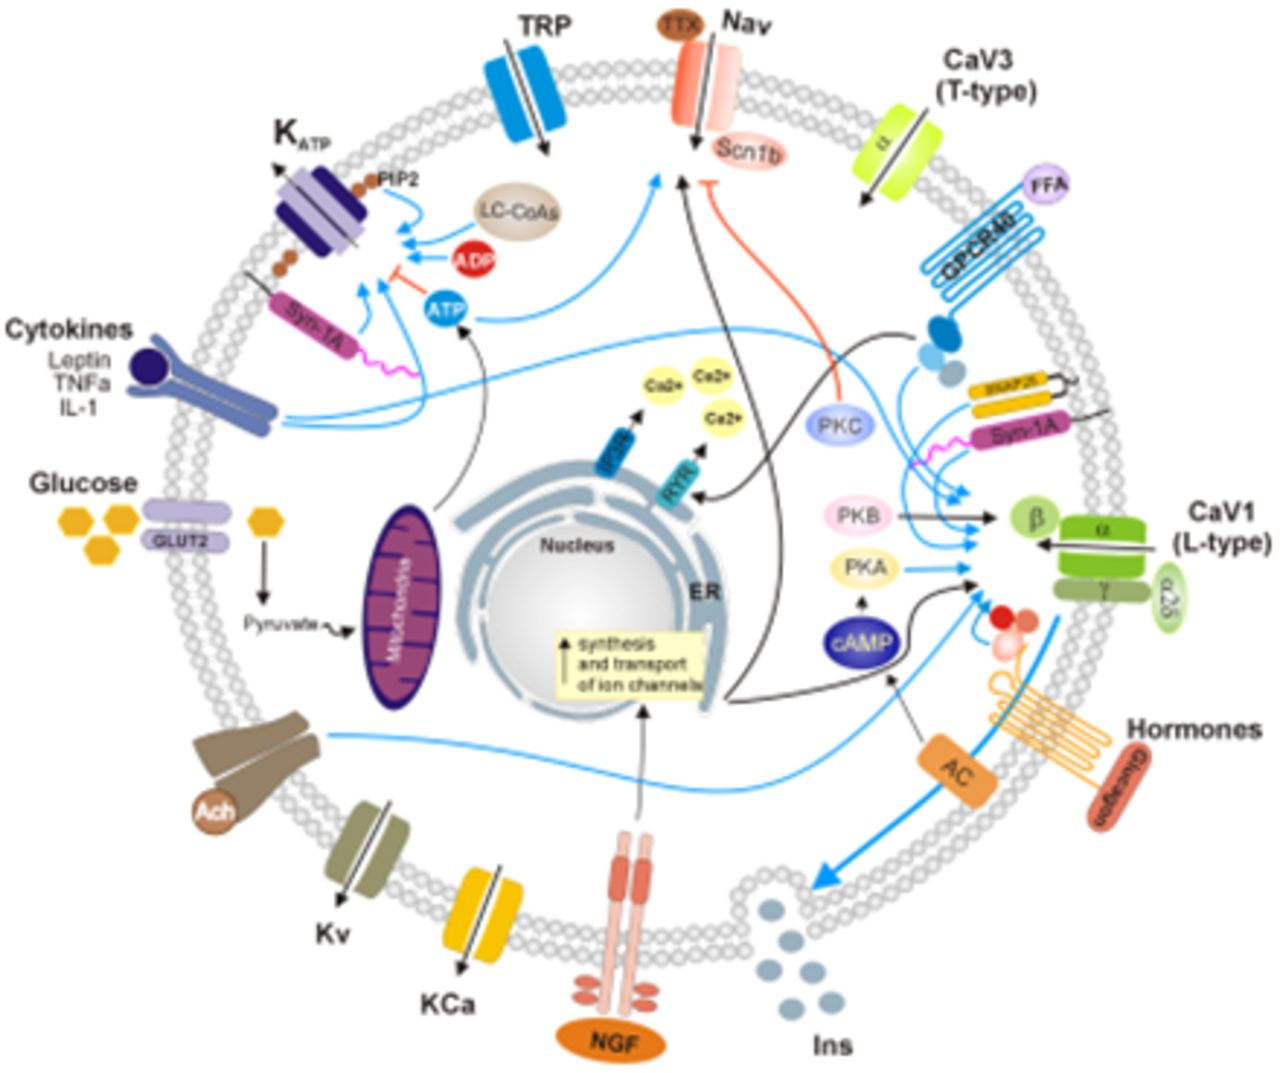 Modulation Of Ionic Channels And Insulin Secretion By Drugs And